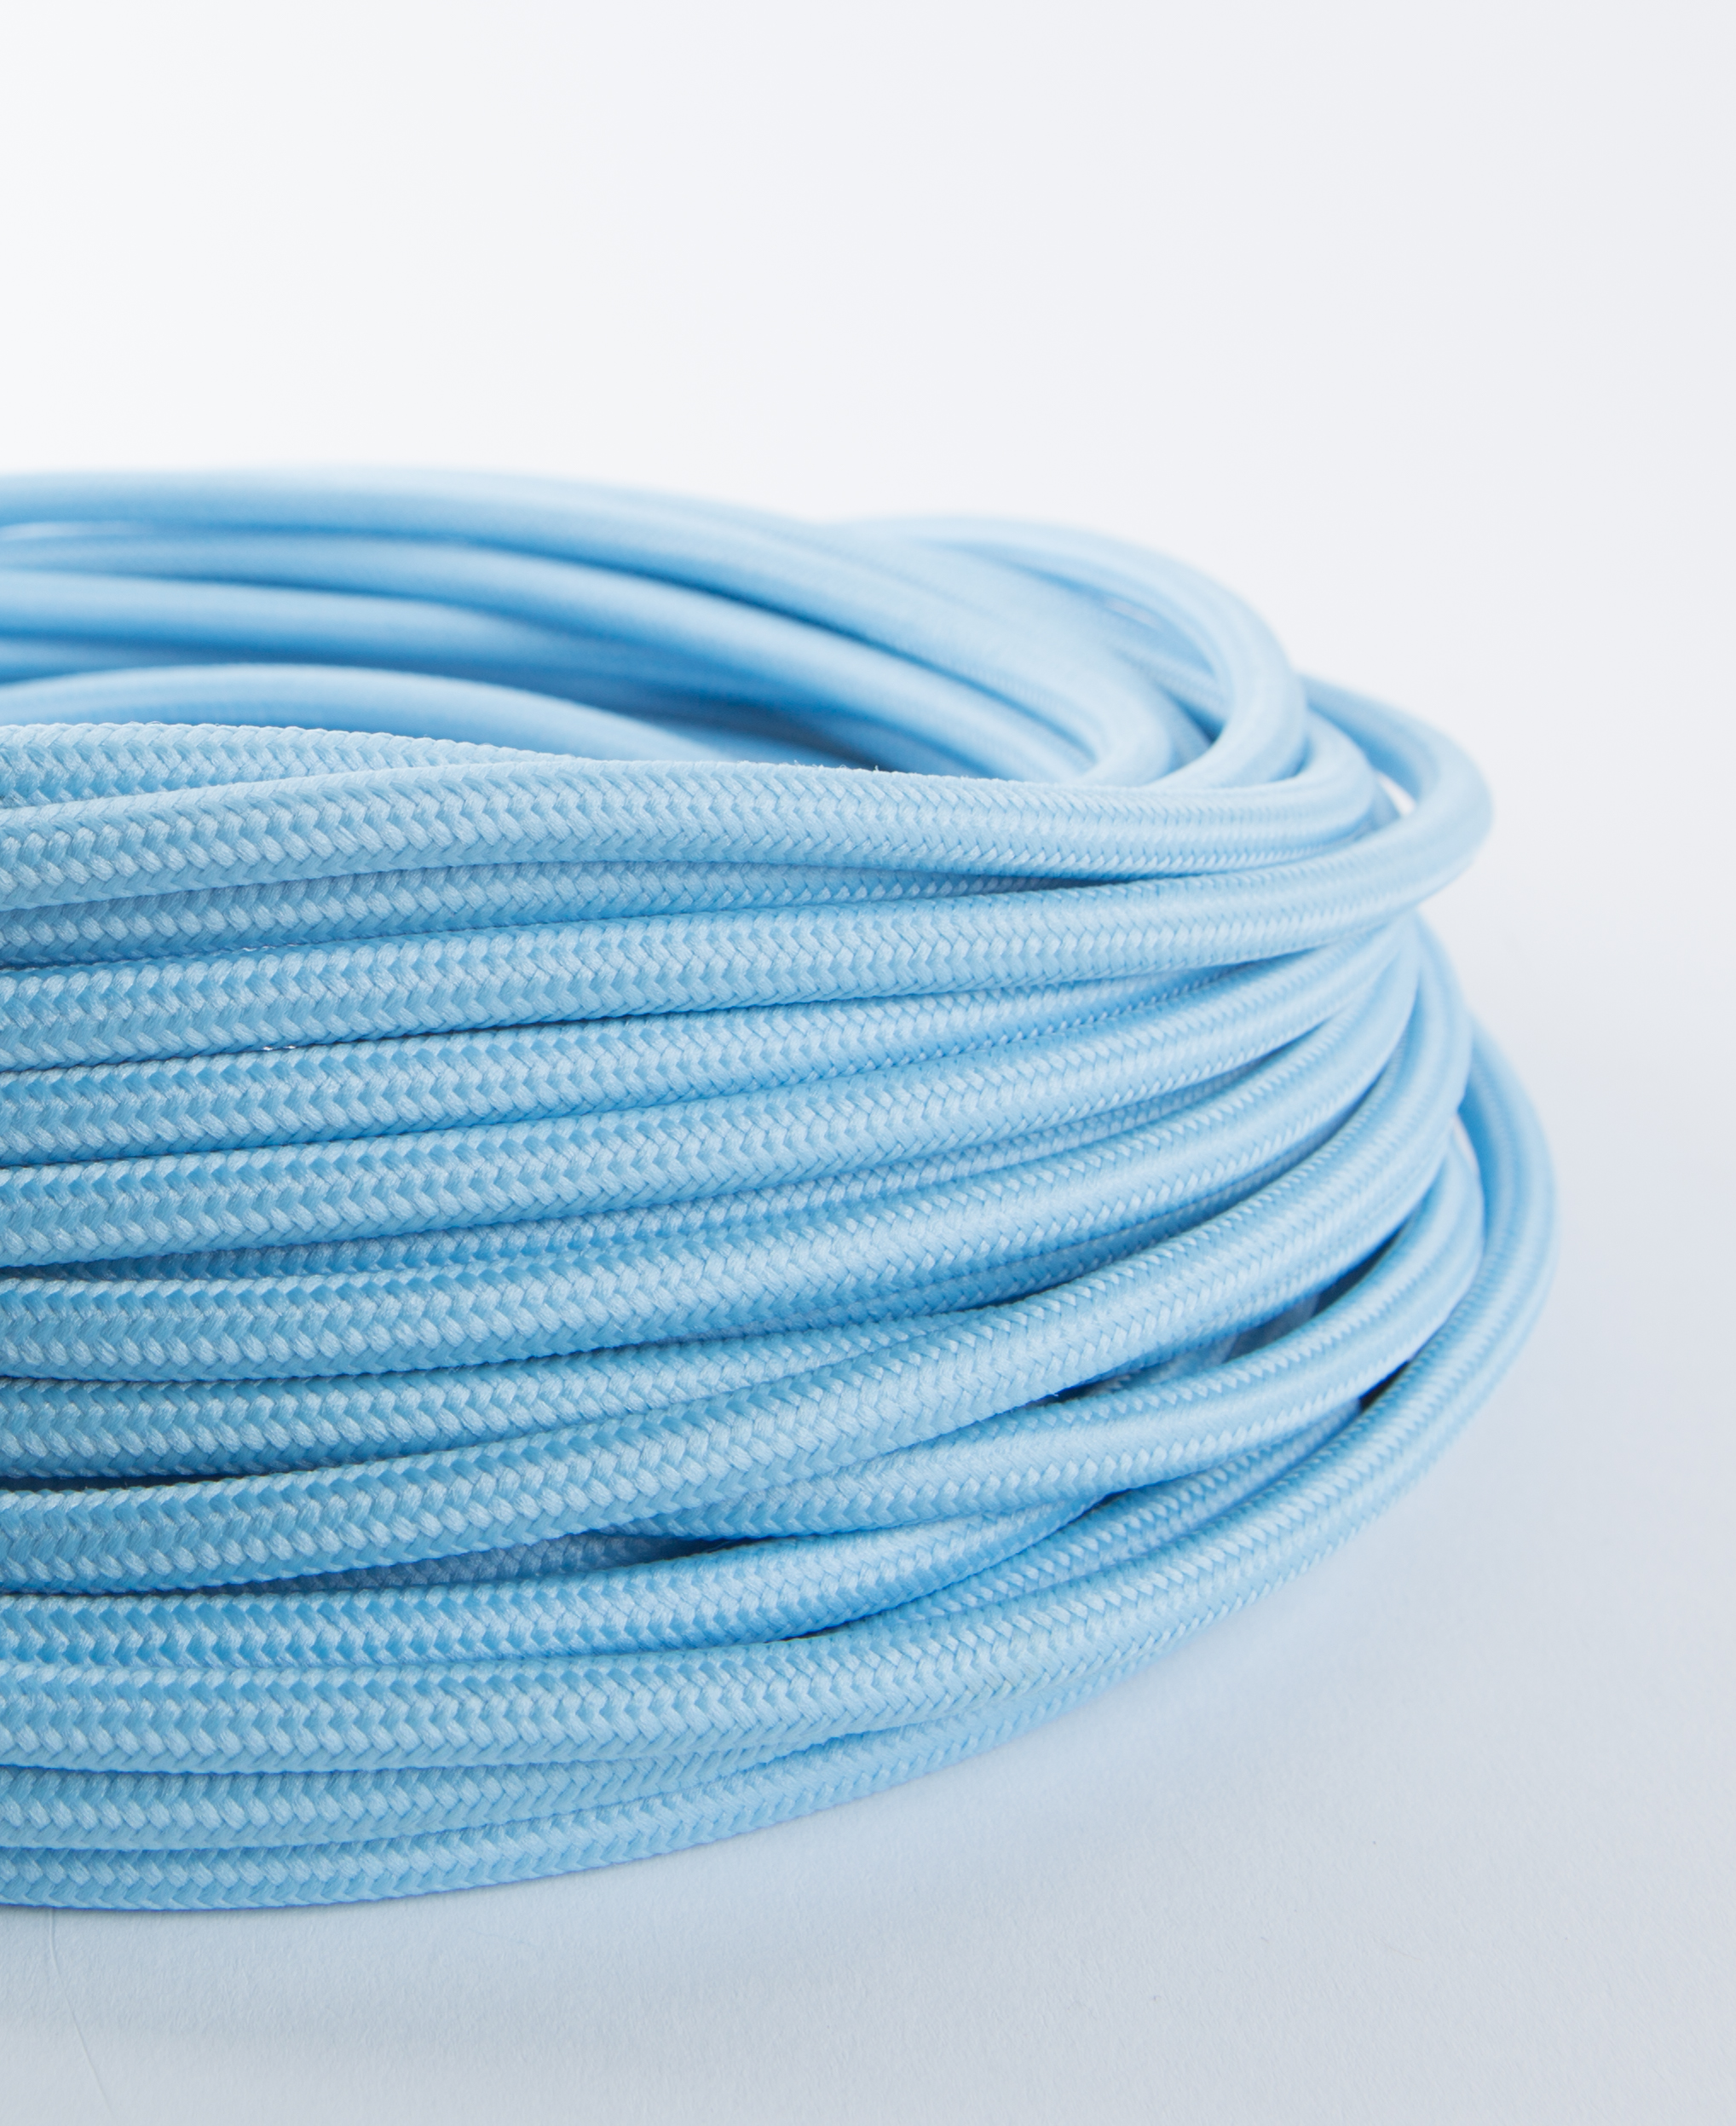 Blue Emulsion Fabric Cable Lighting Wire CE Certifed